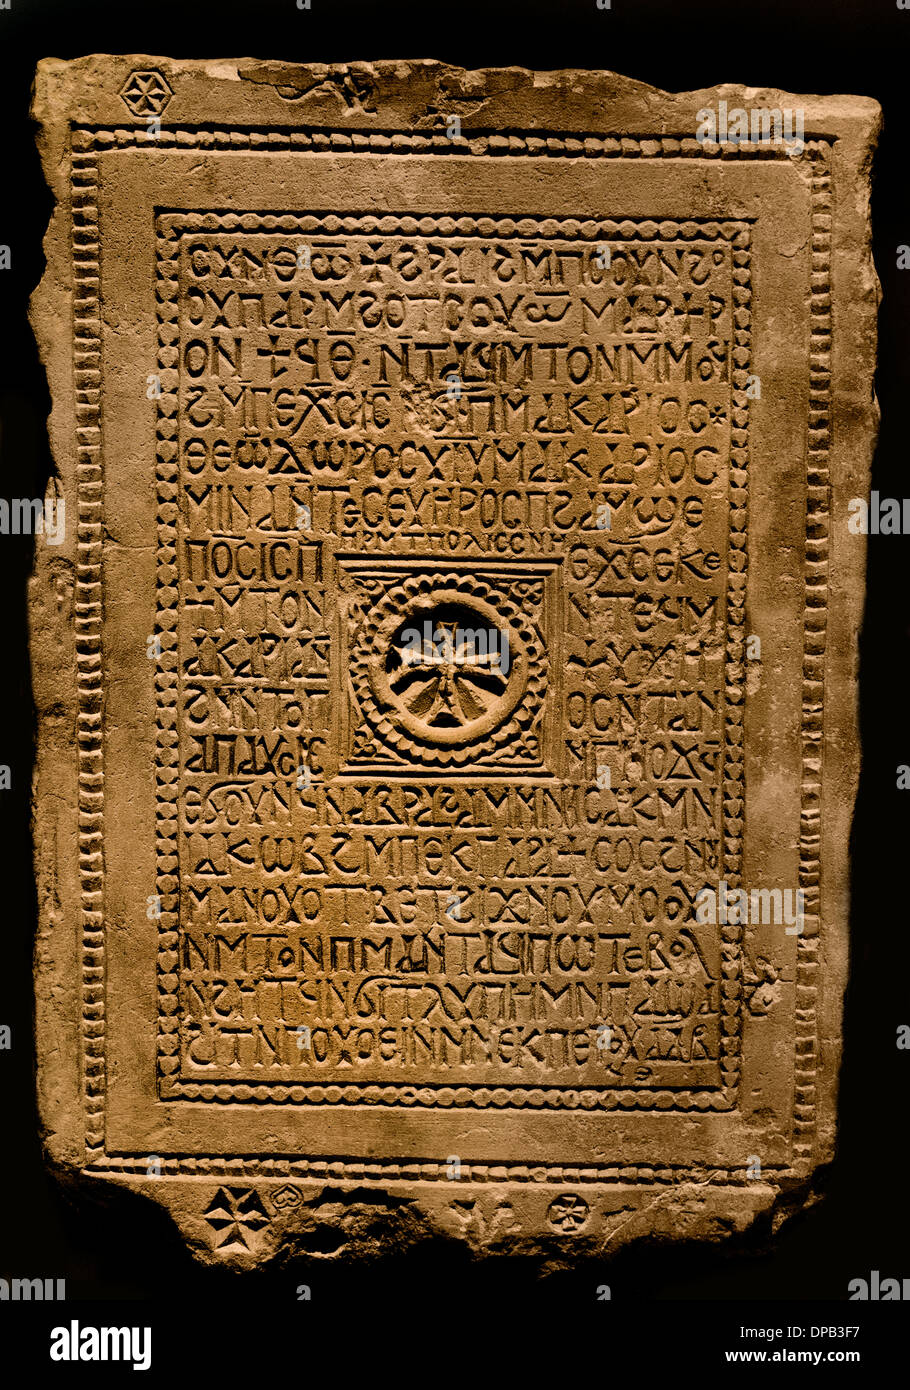 Theodore tombstone engraved with a cross and a language text Esna Egypt February 26 limestone 983 Coptic Catholic Christian - Stock Image